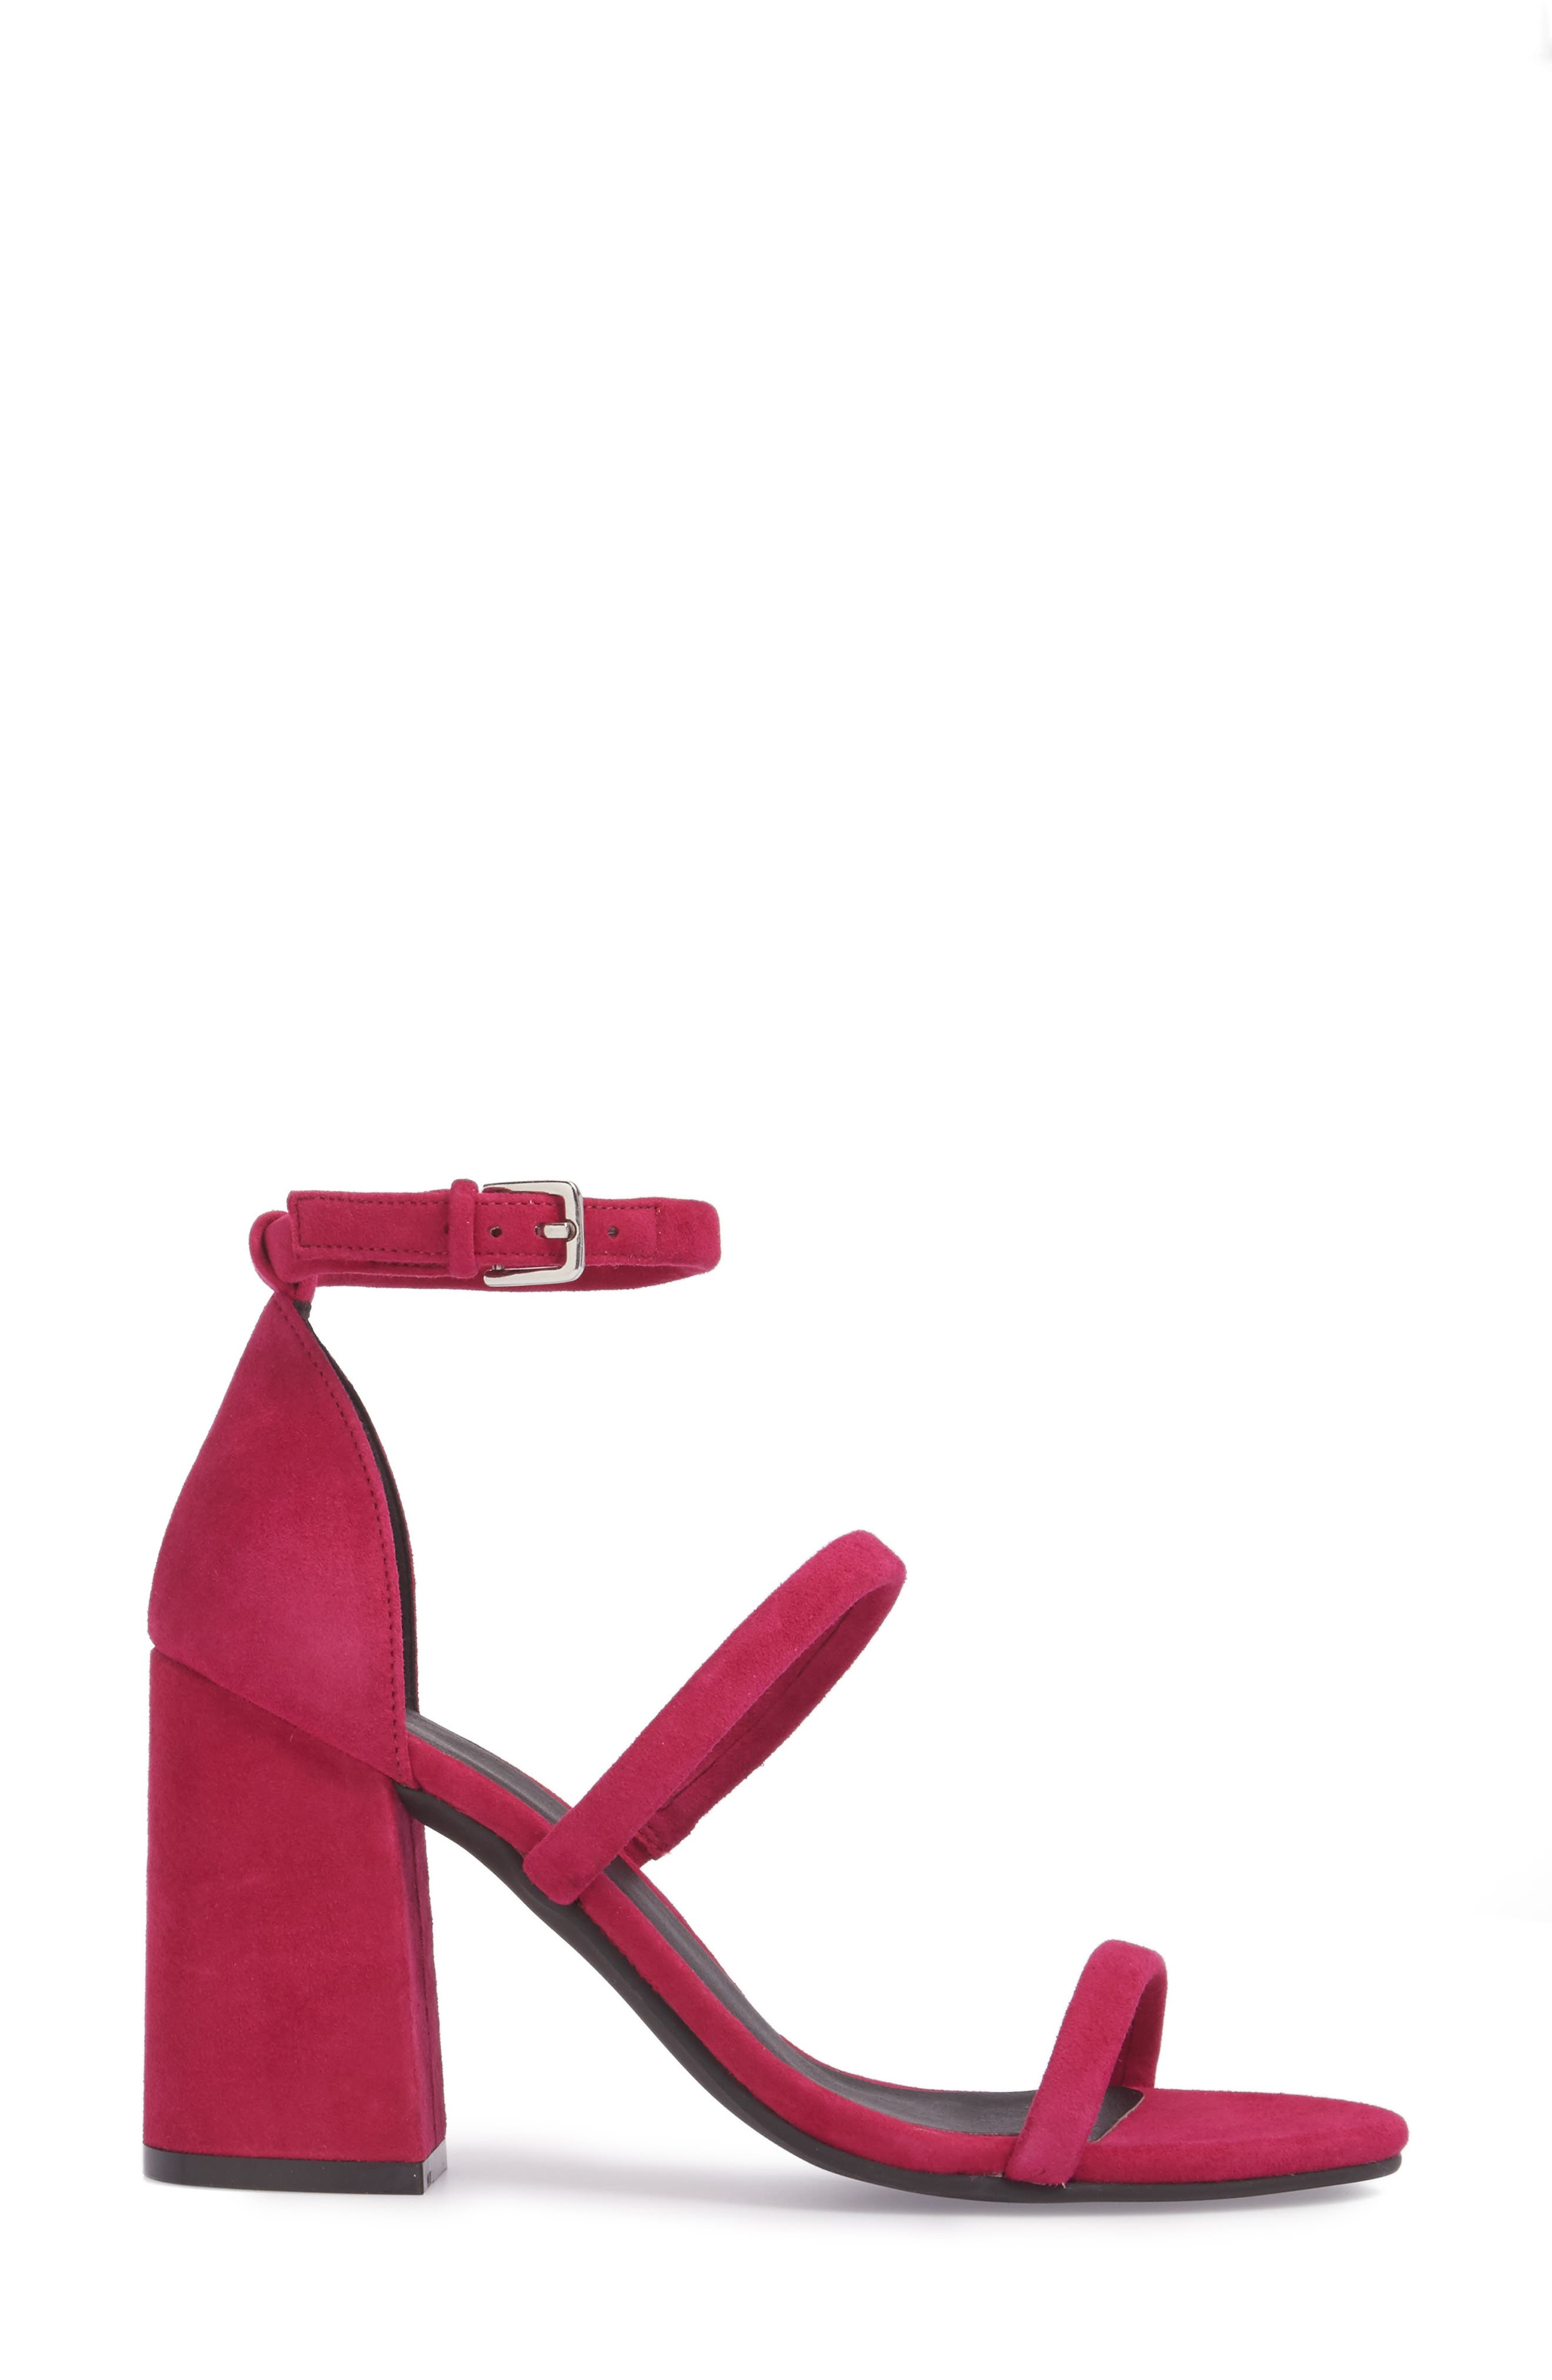 Carly Strappy Sandal,                             Alternate thumbnail 3, color,                             Fuschia Suede